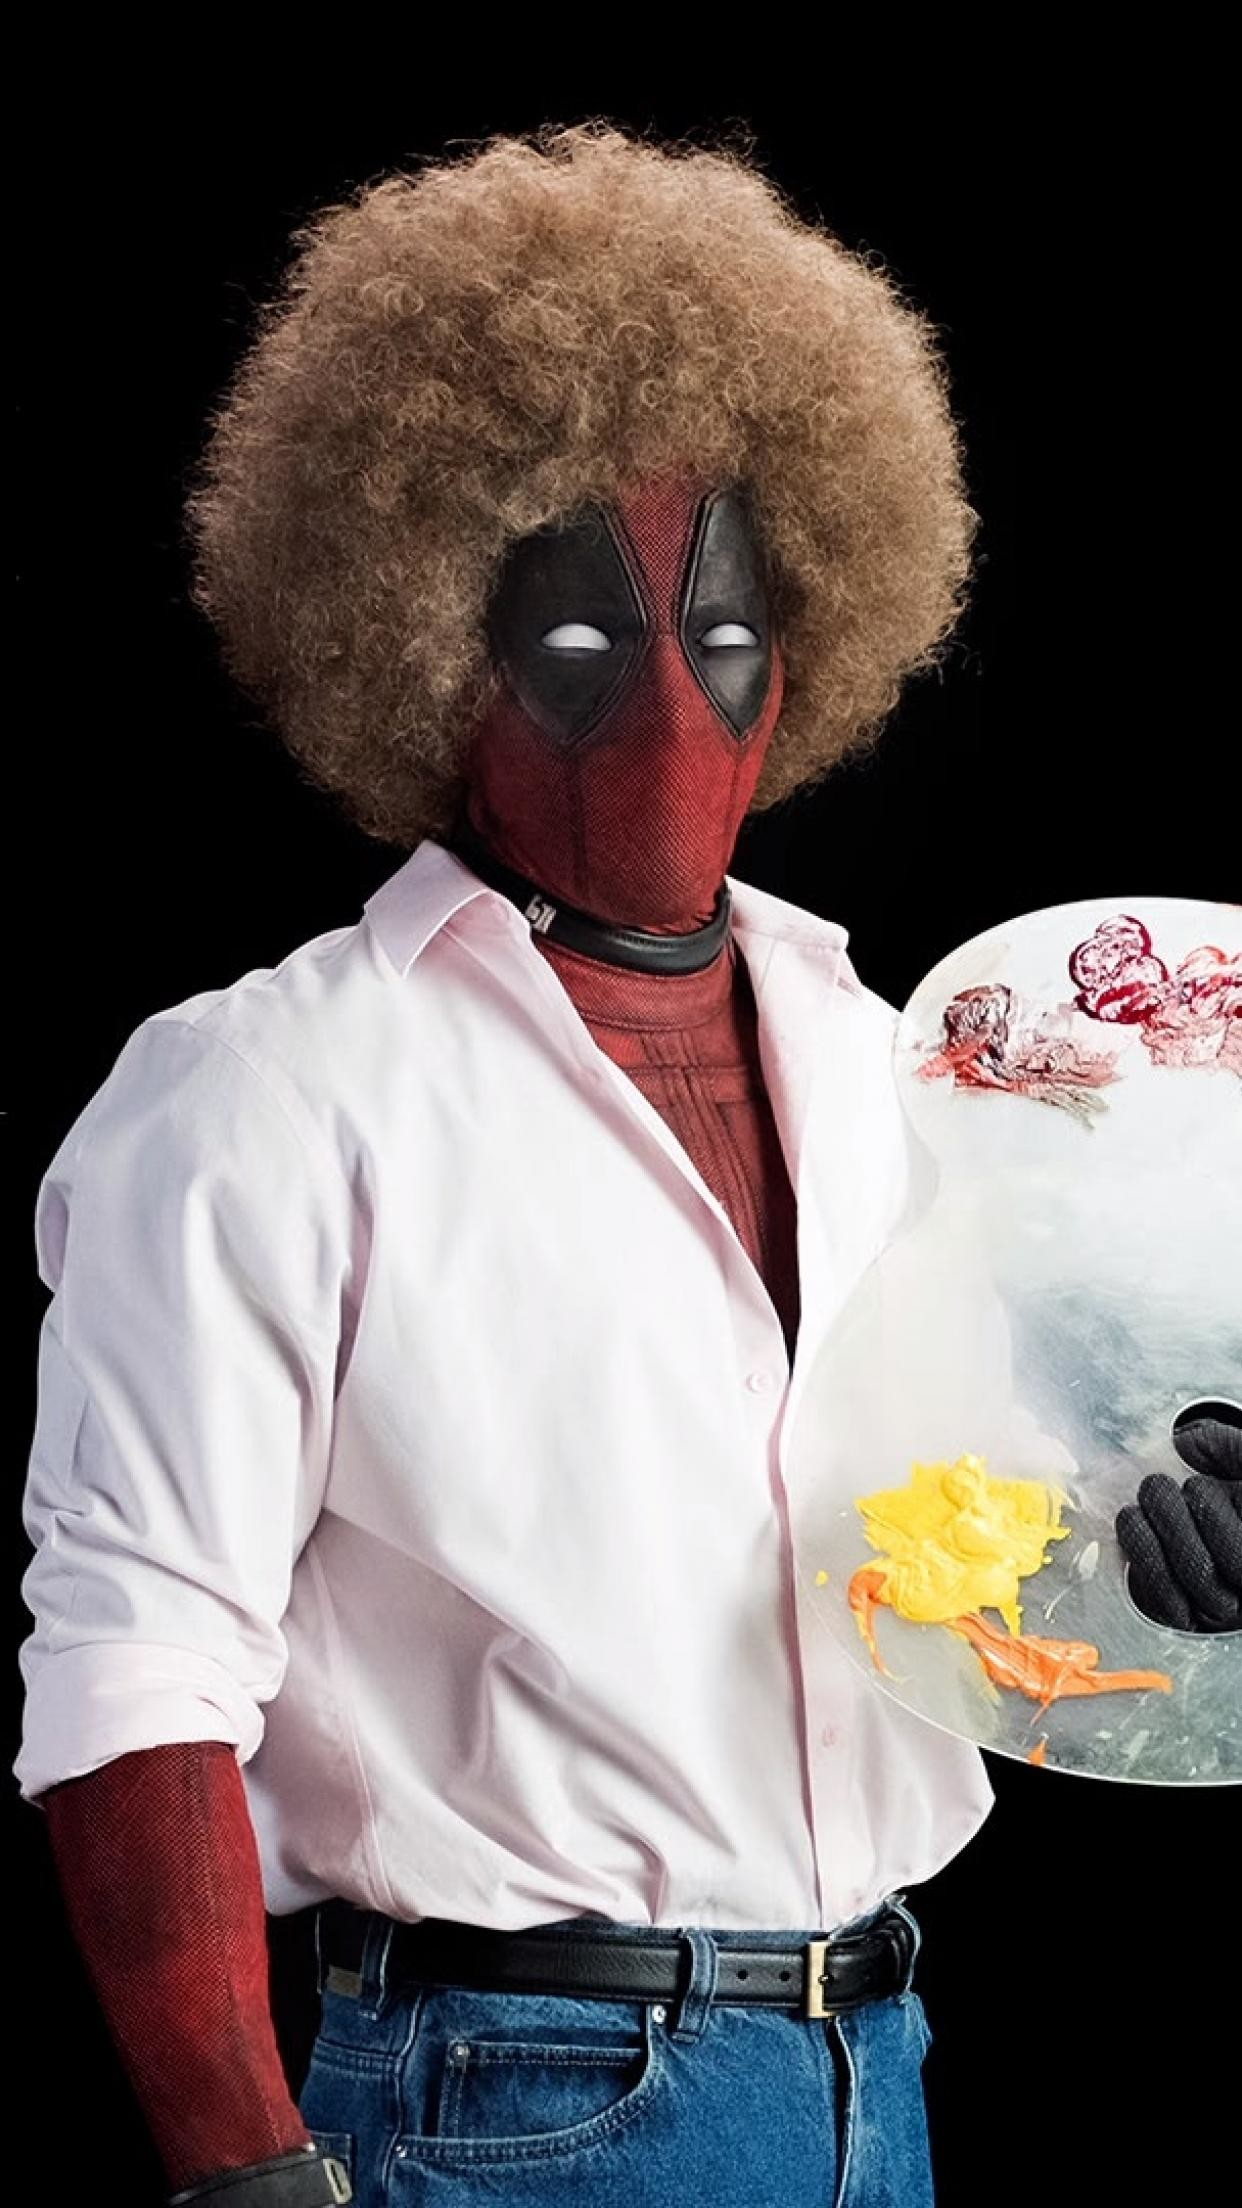 Res: 1242x2208, ... wallpaperiphone6 750x1334 wallpaperiphone5 640x1136 wallpaperiphone4  640x960 wallpaper. Wallpaper information about Deadpool dressed as Bob Ross